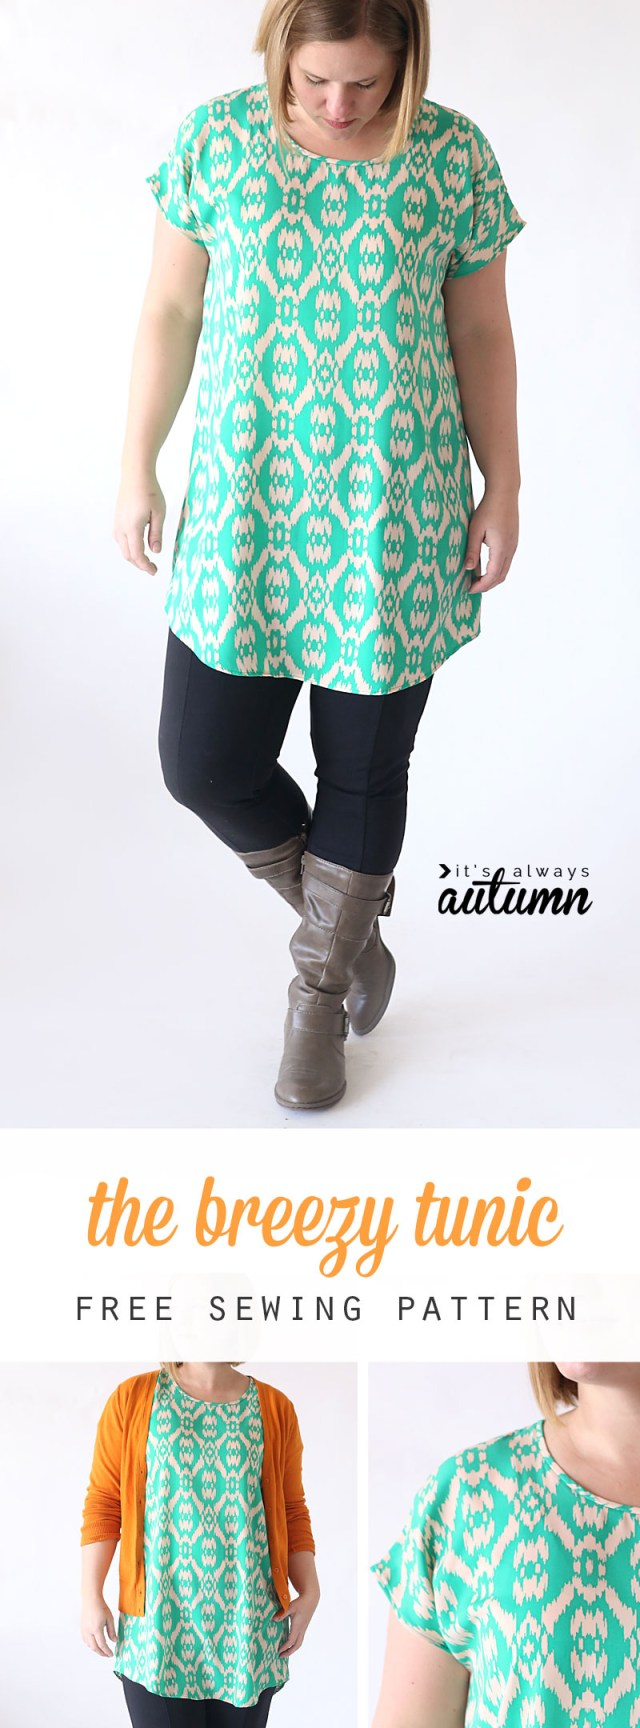 Tunic Sewing Pattern The Breezy Tee Tunic Free Sewing Pattern Its Always Autumn